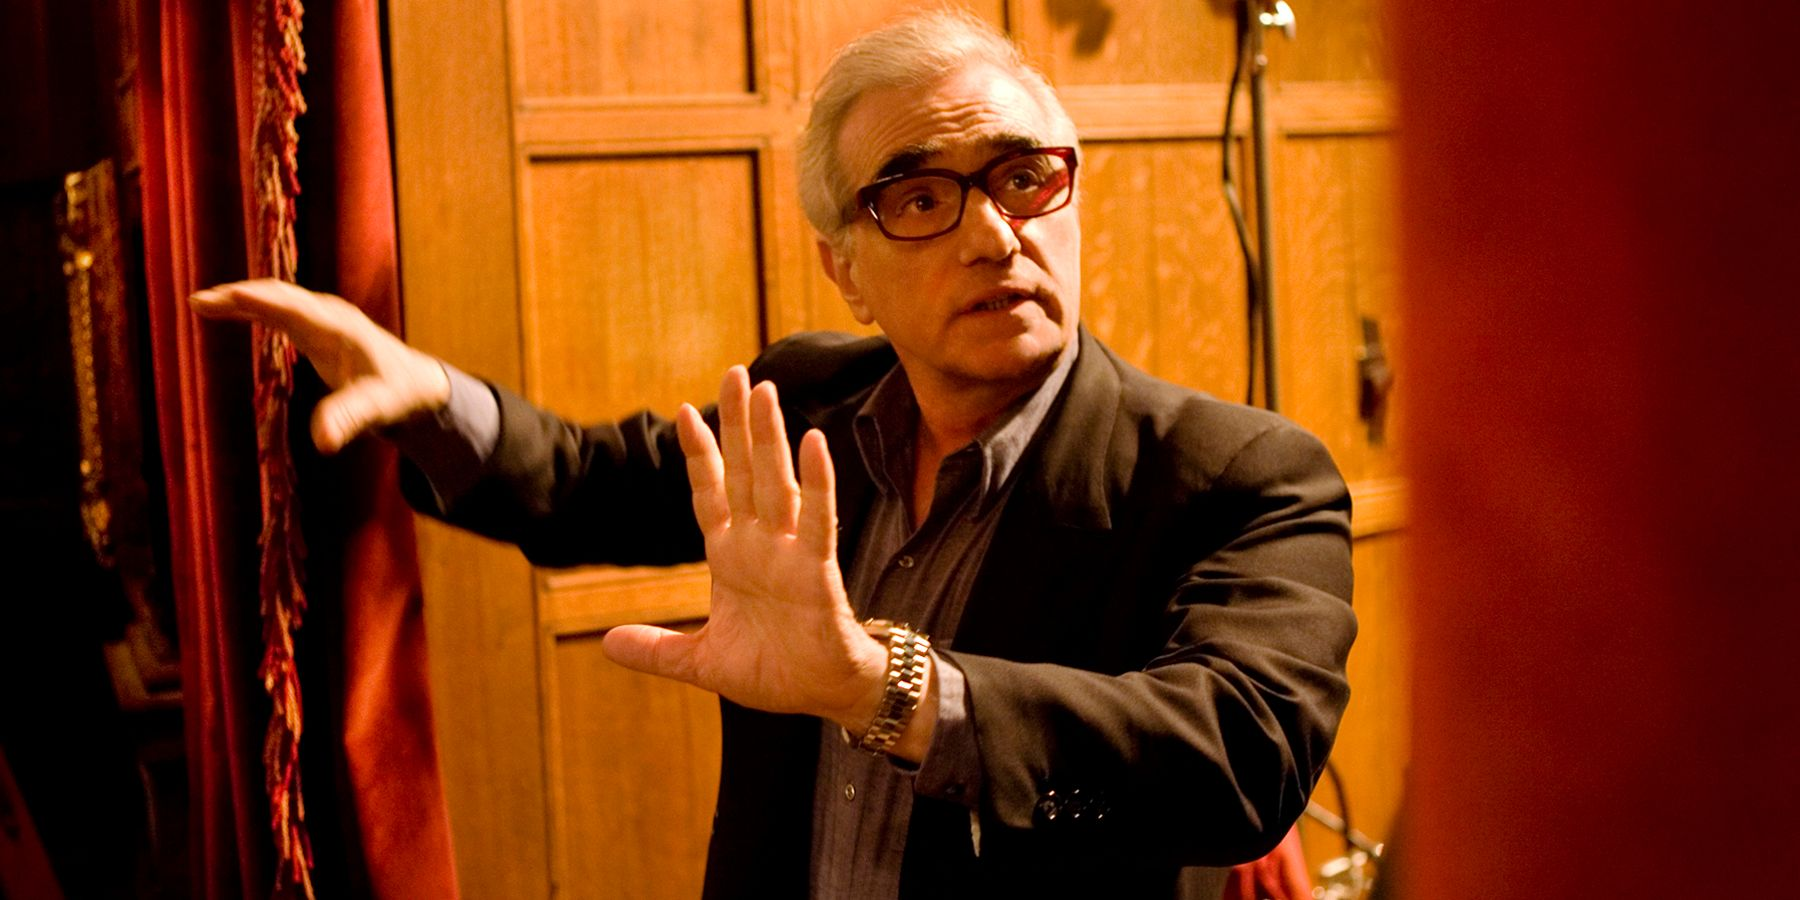 Scorsese's The Irishman Doesn't Have a Release Date Yet [Updated]